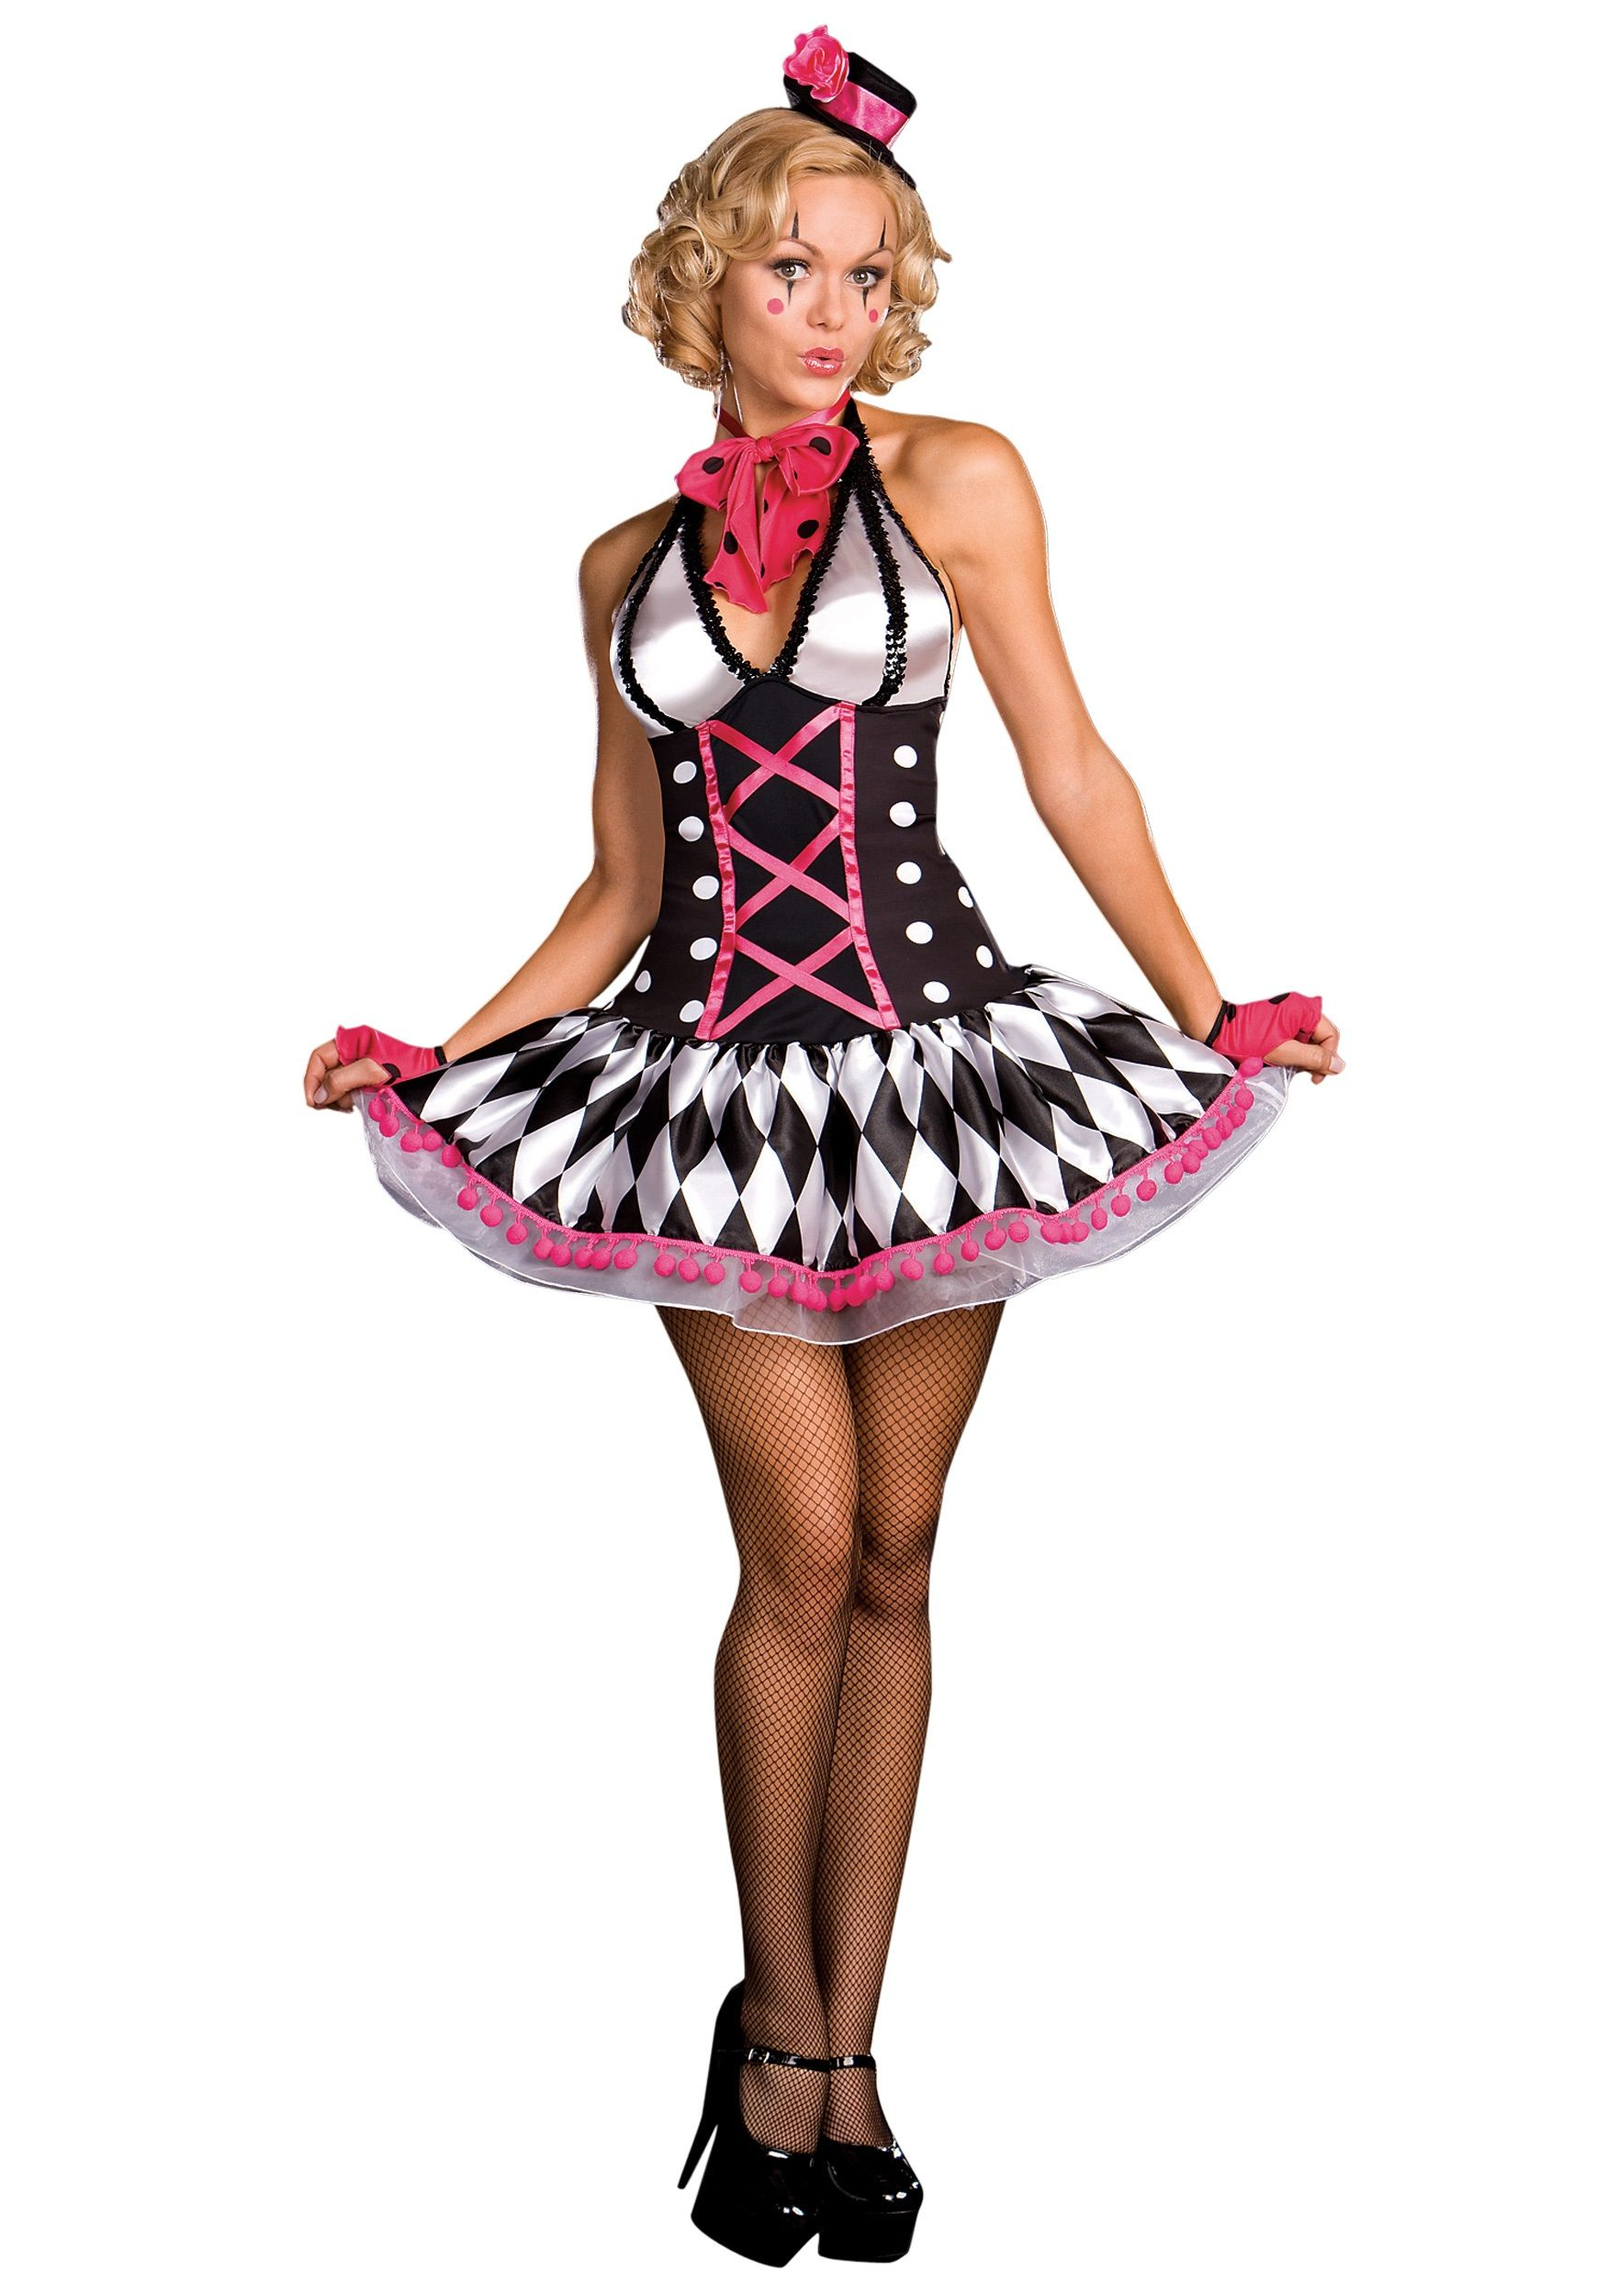 Home ladies costumes rodeo gal costume - Clown Costumes For Women Home Halloween Costume Ideas Funny Costumes Women S Sexy Clown Costume